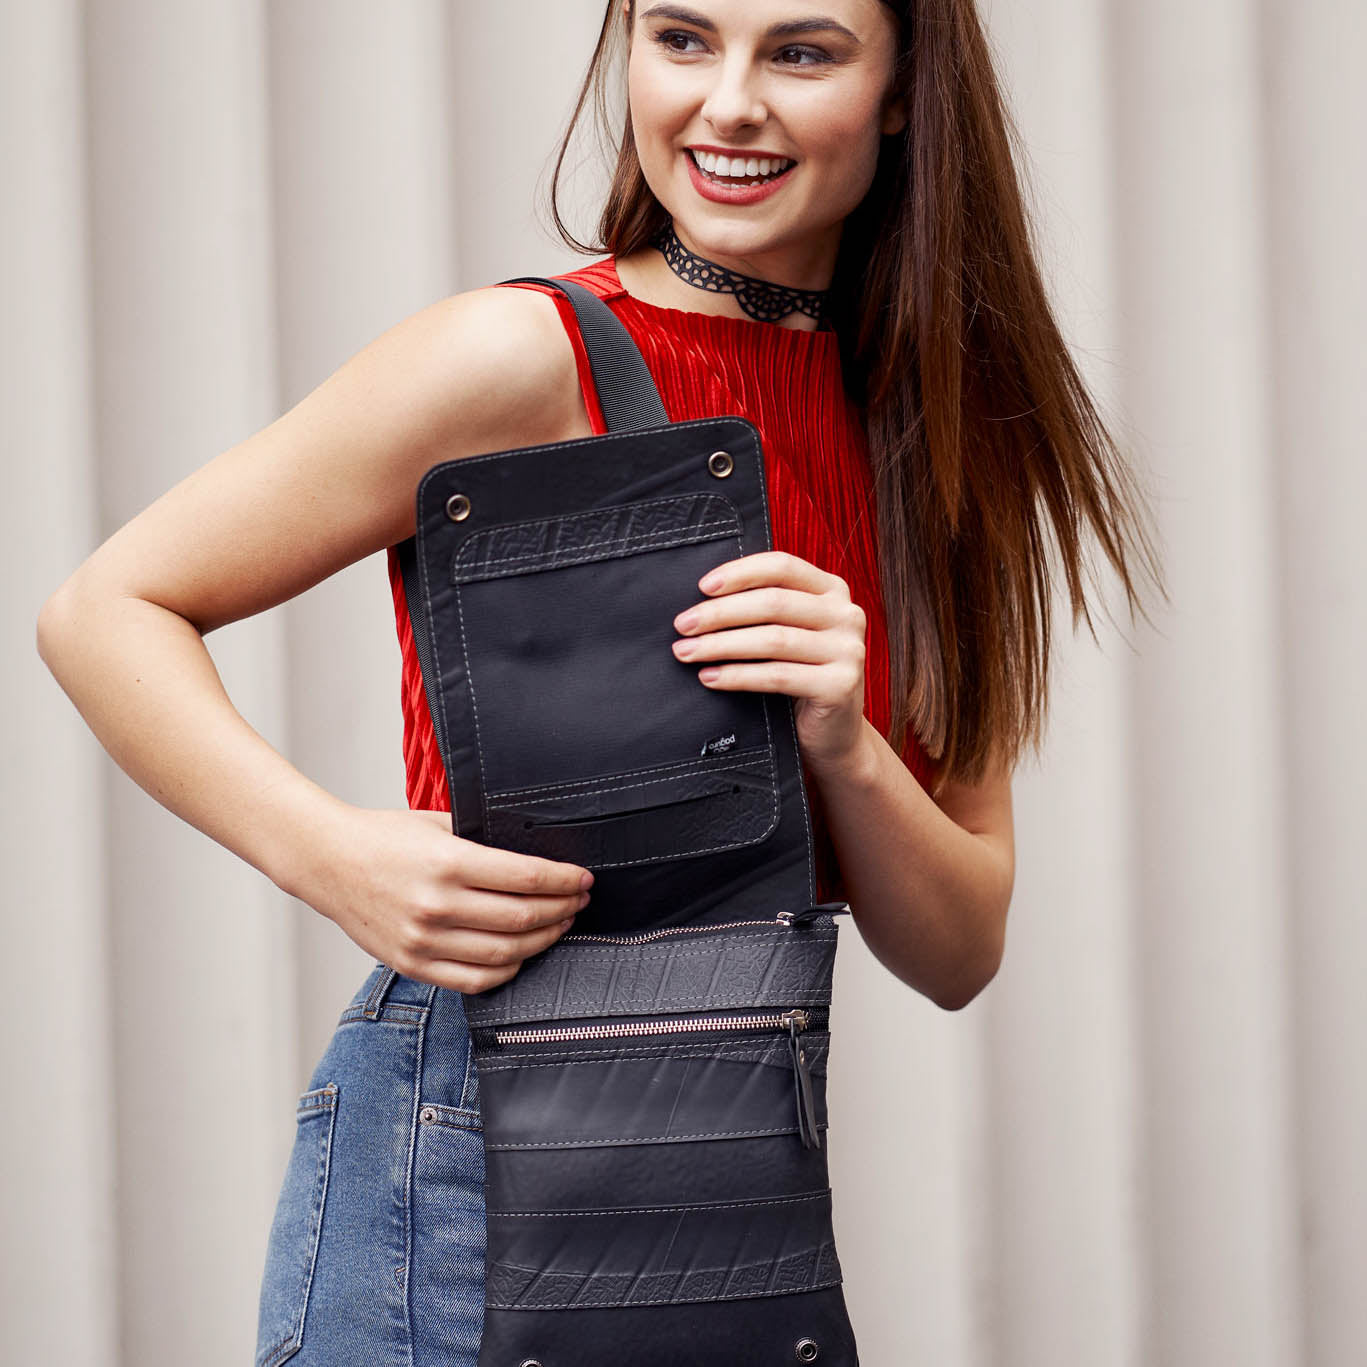 Spencer Recycled Rubber Vegan Crossbody Bag (3 Sizes Available) by Paguro Upcycle